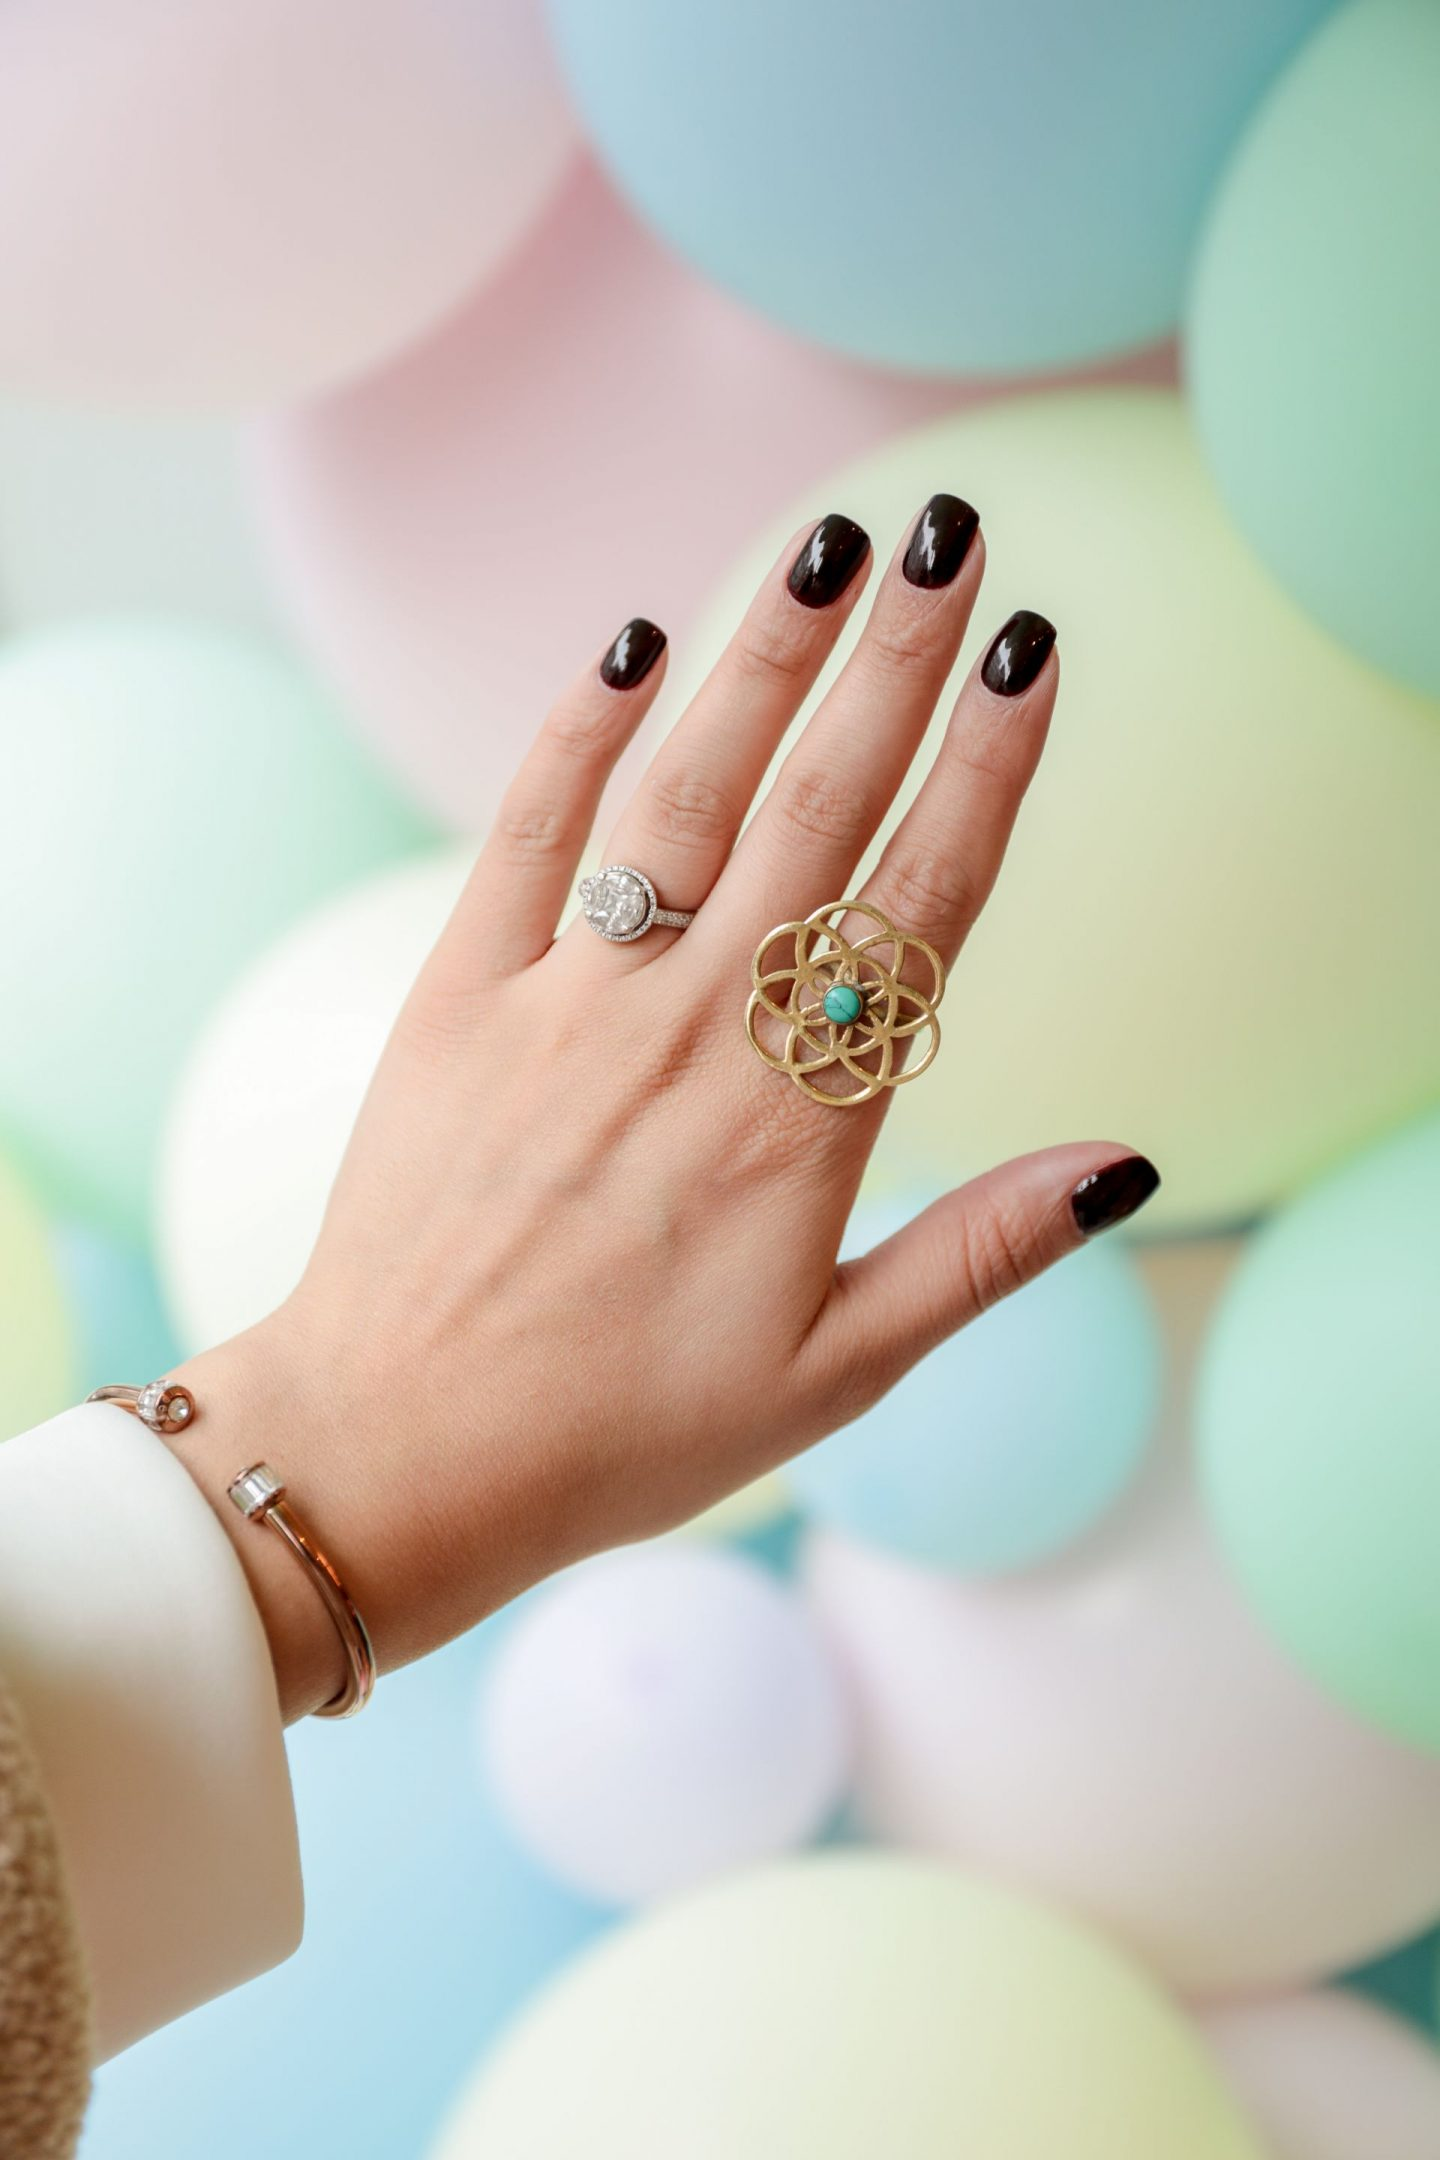 New and Now: The Vegan Nail Collection at TOWNHOUSE Nails, London